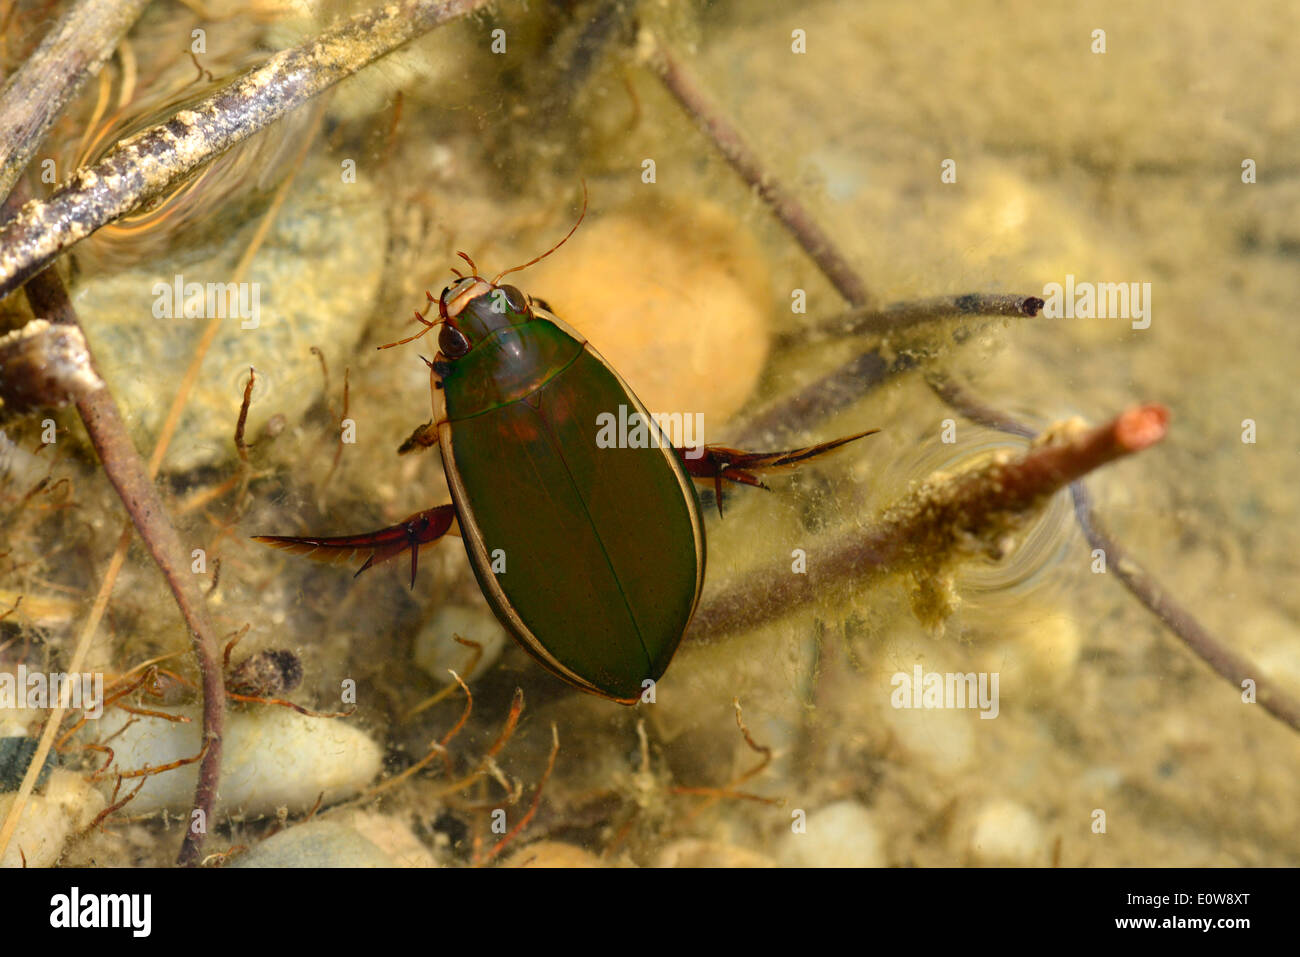 Great Diving Beetle (Dytiscus marginalis), beetle swimming under water. Germany - Stock Image